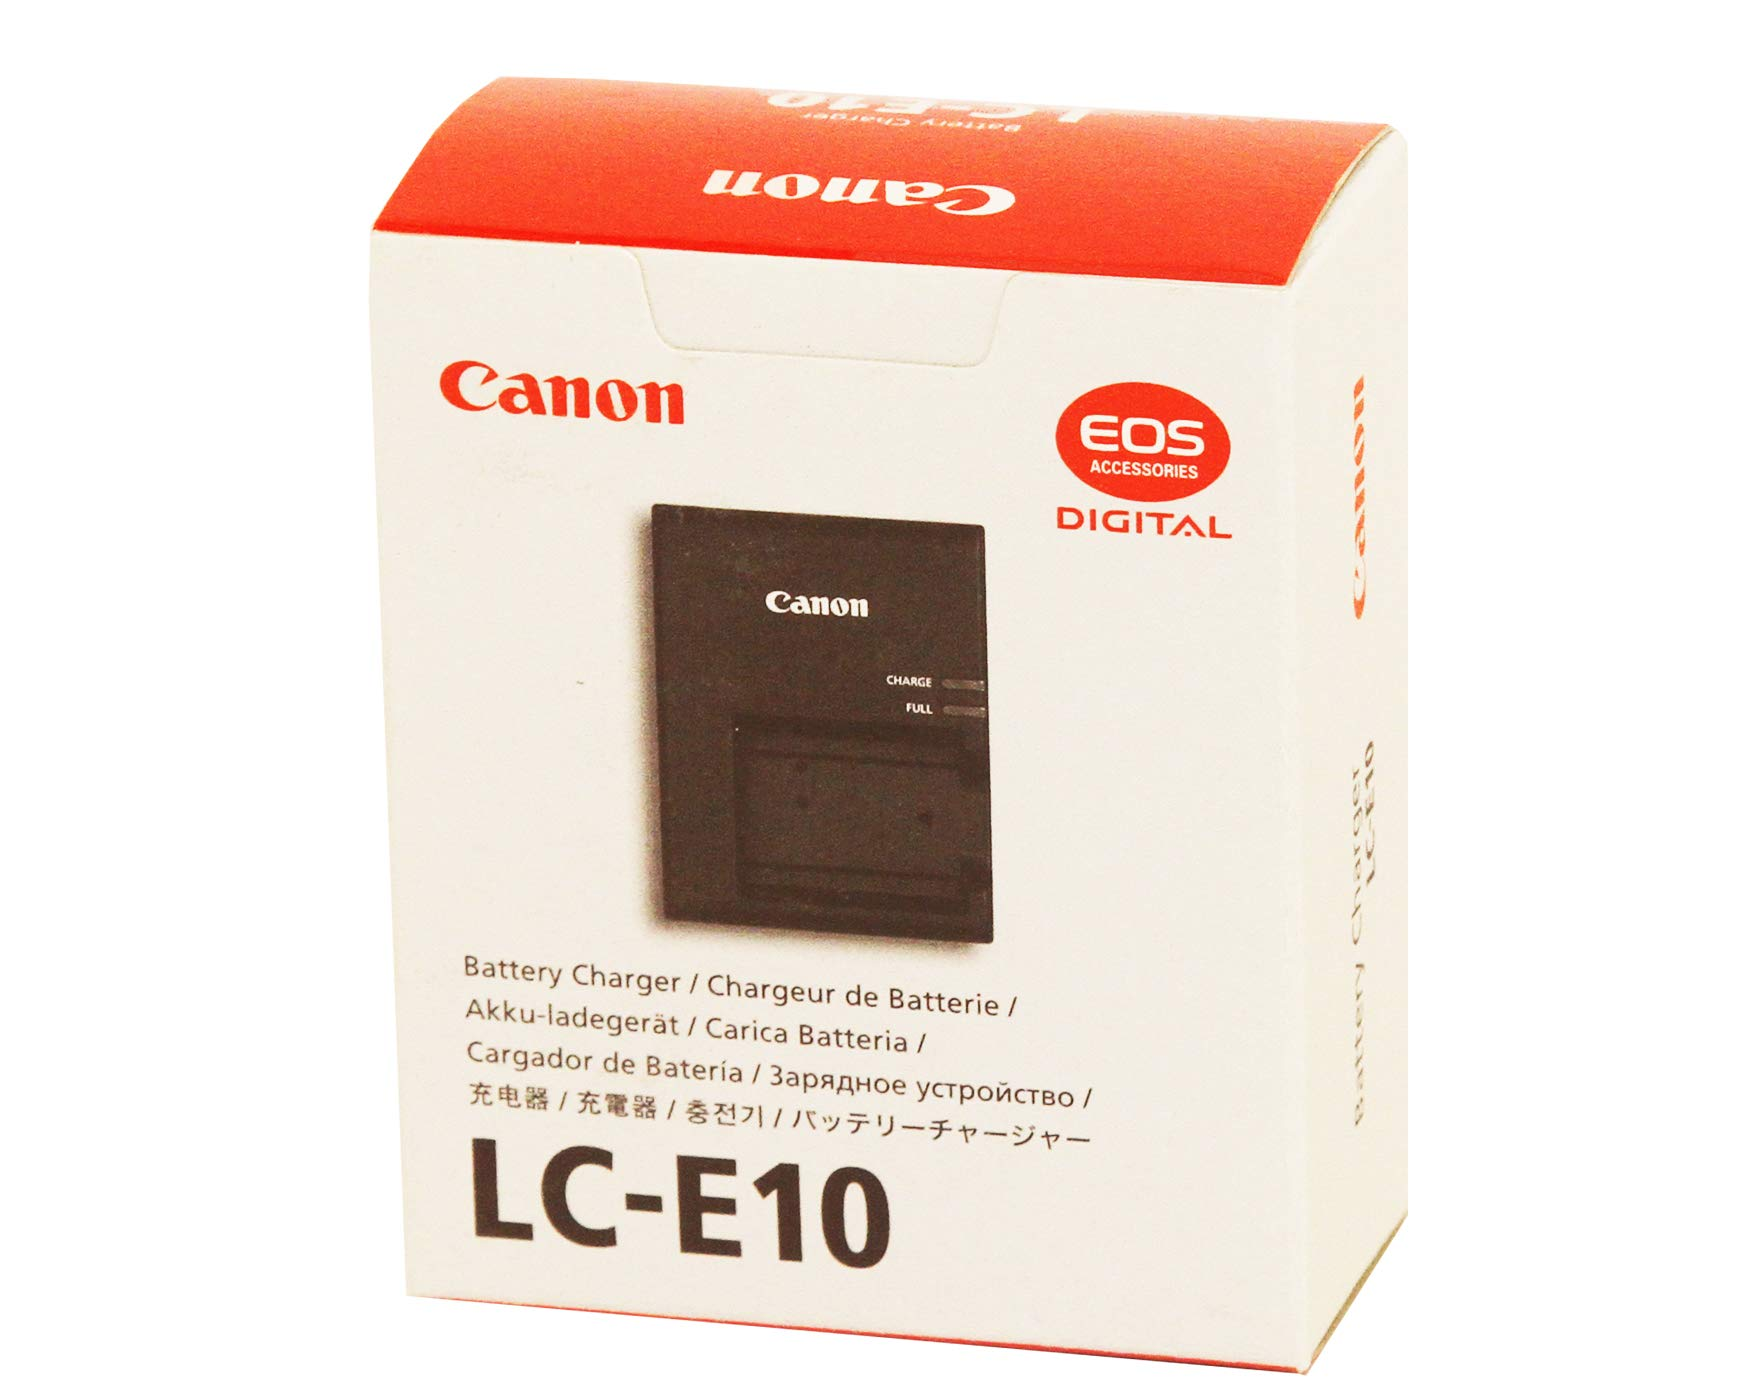 Canon LC-E10 Battery Charger for EOS Rebel T3, T5, T6 by Canon Accessories